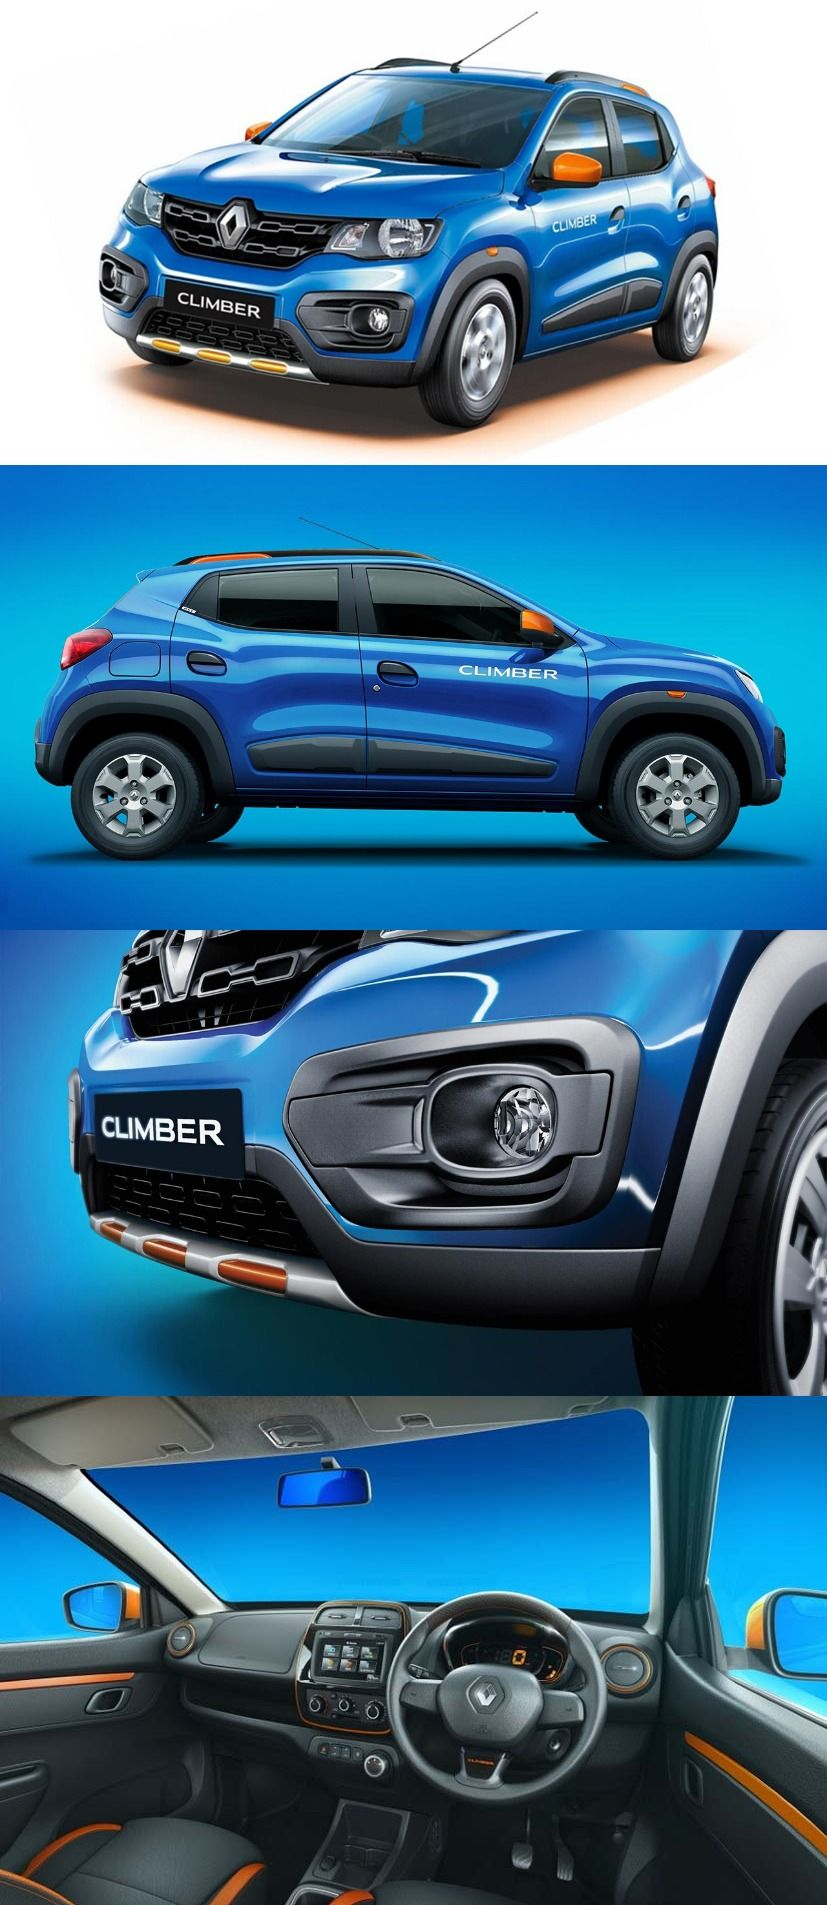 Renault Kwid Climber Edition Launched in India at INR 4.30